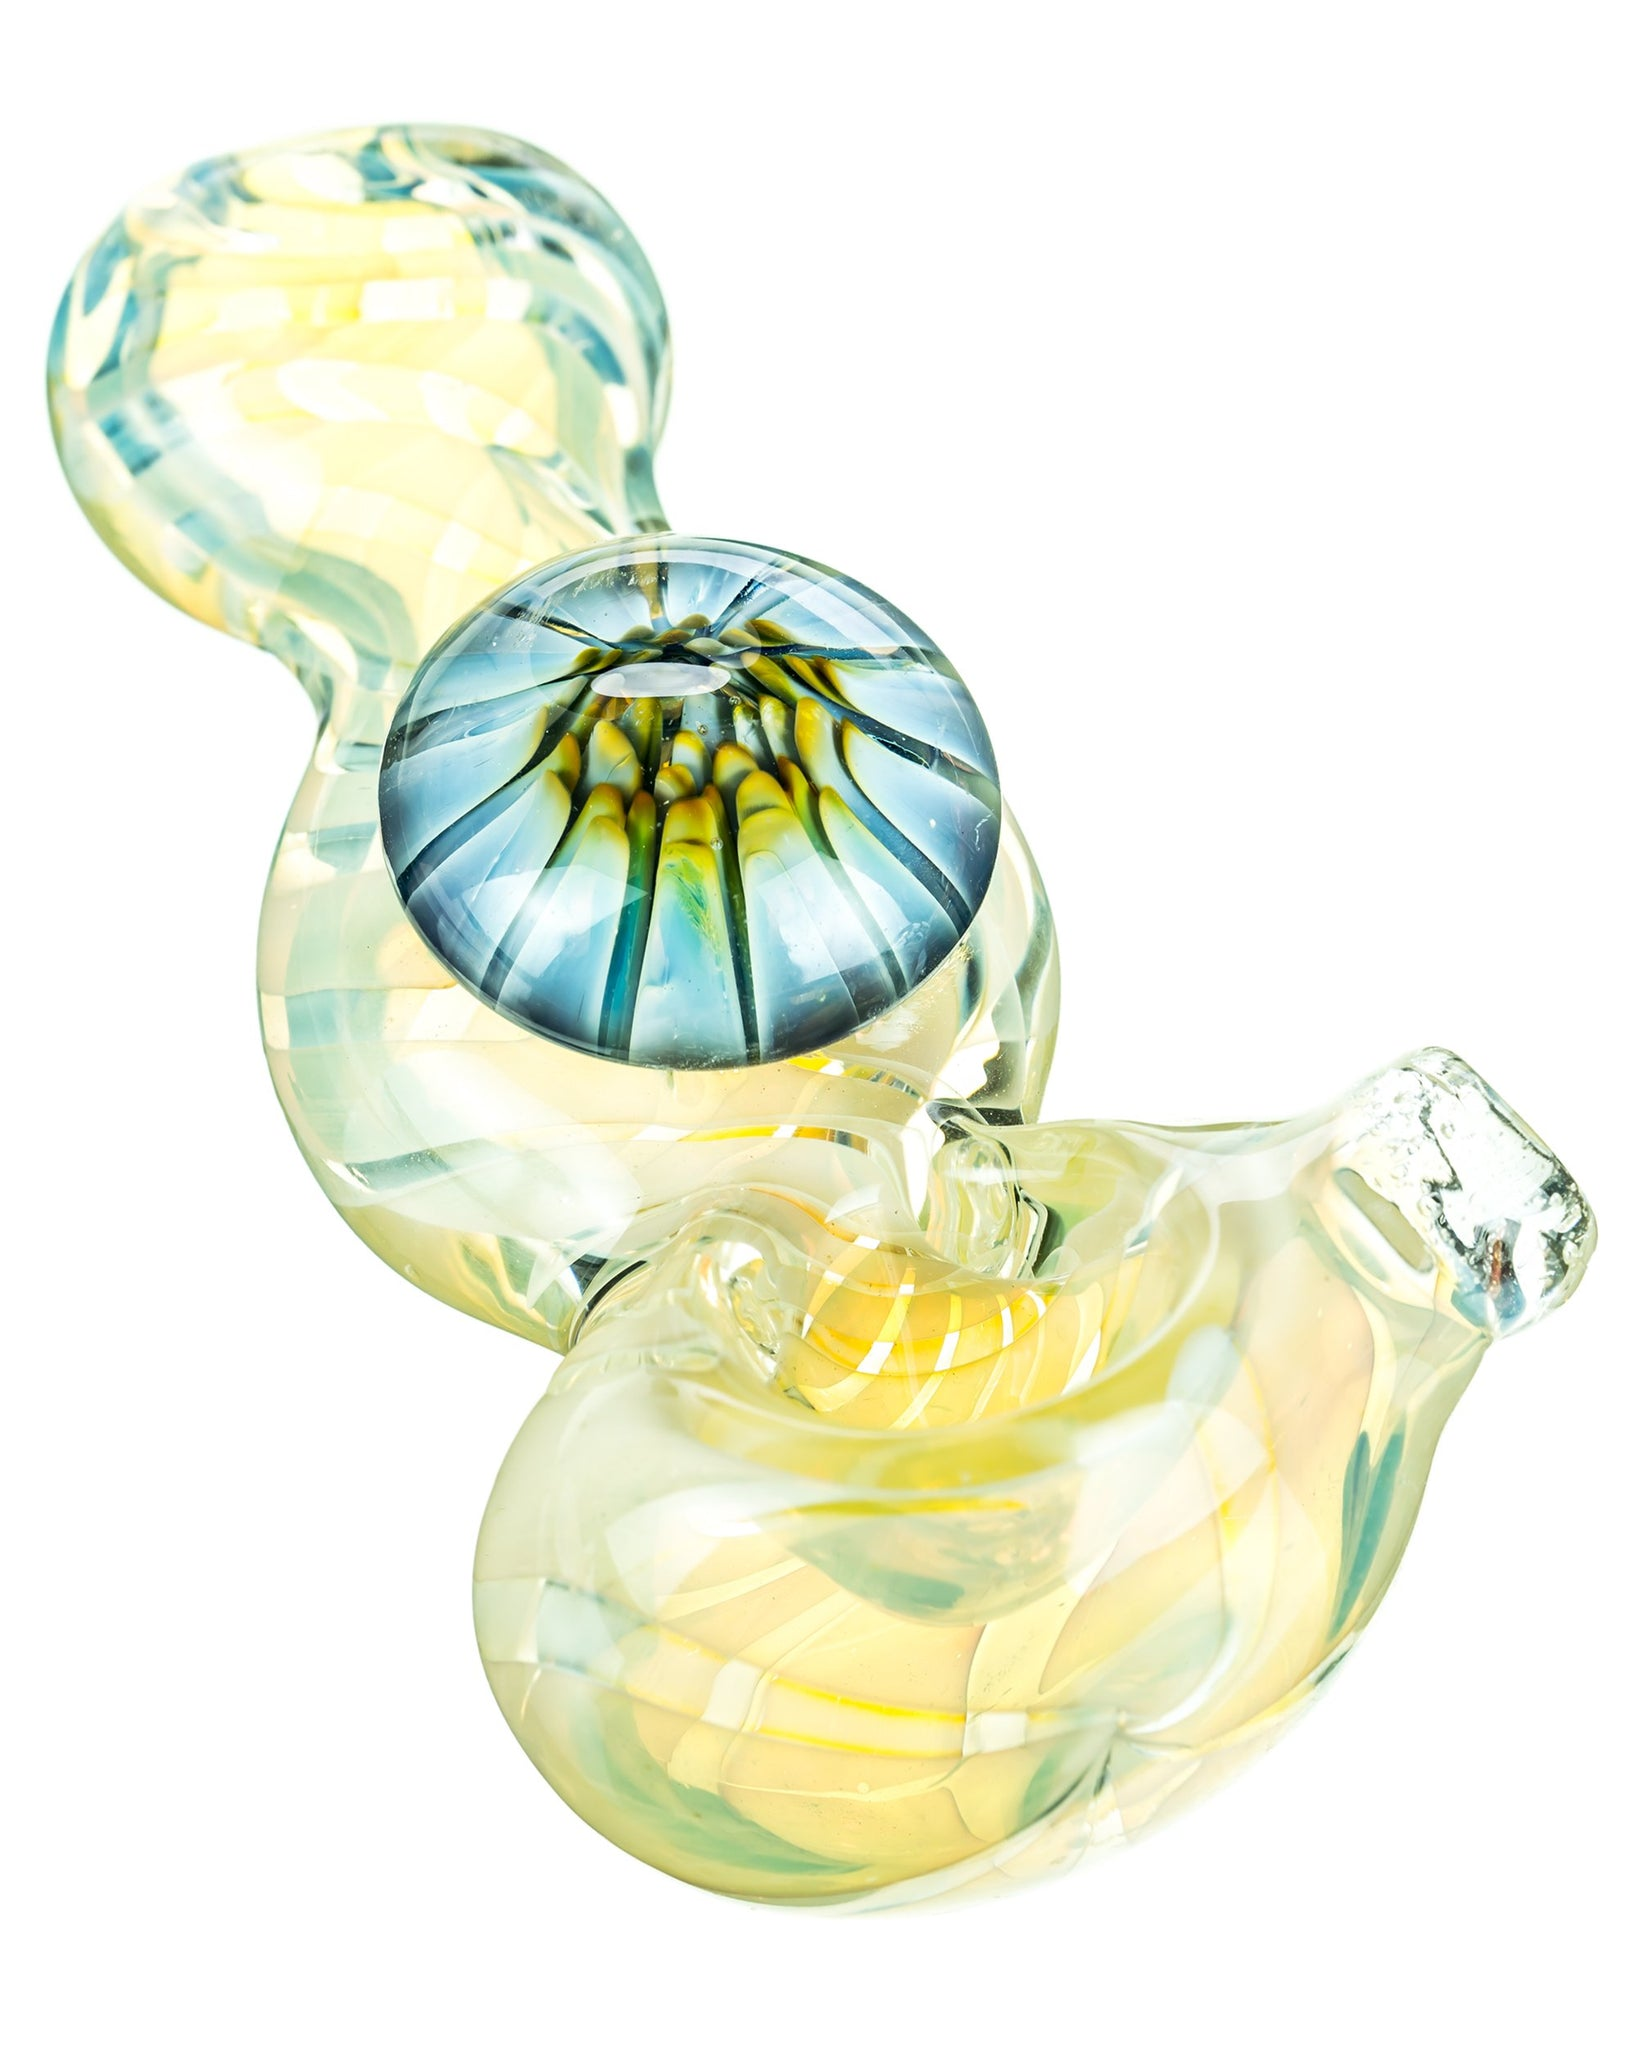 [glass pipes], [head shop], [water pipes], [smoke shop], [the pipe store]